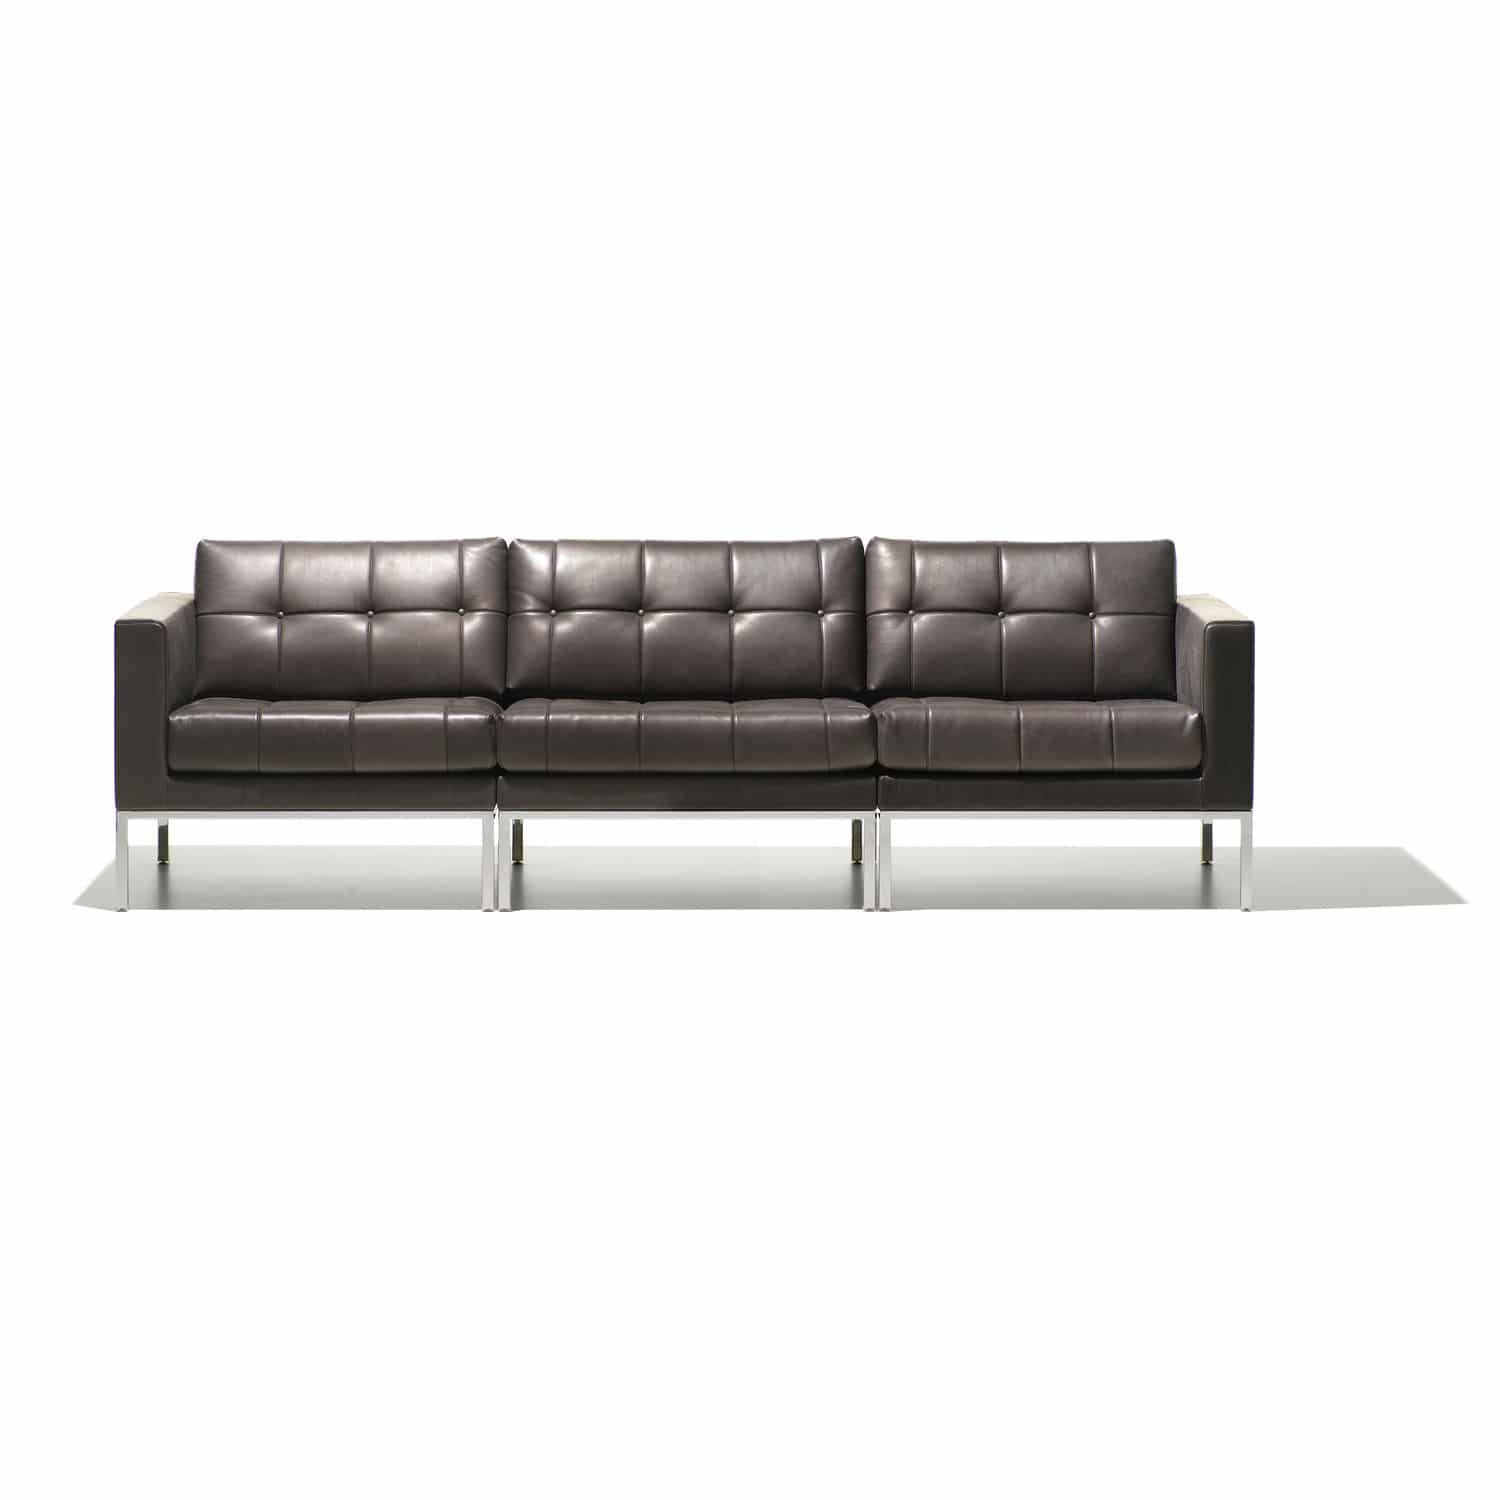 3 2 leather sofa deals - Contemporary Sofa Leather 2 Seater 3 Seater Ds 159 De